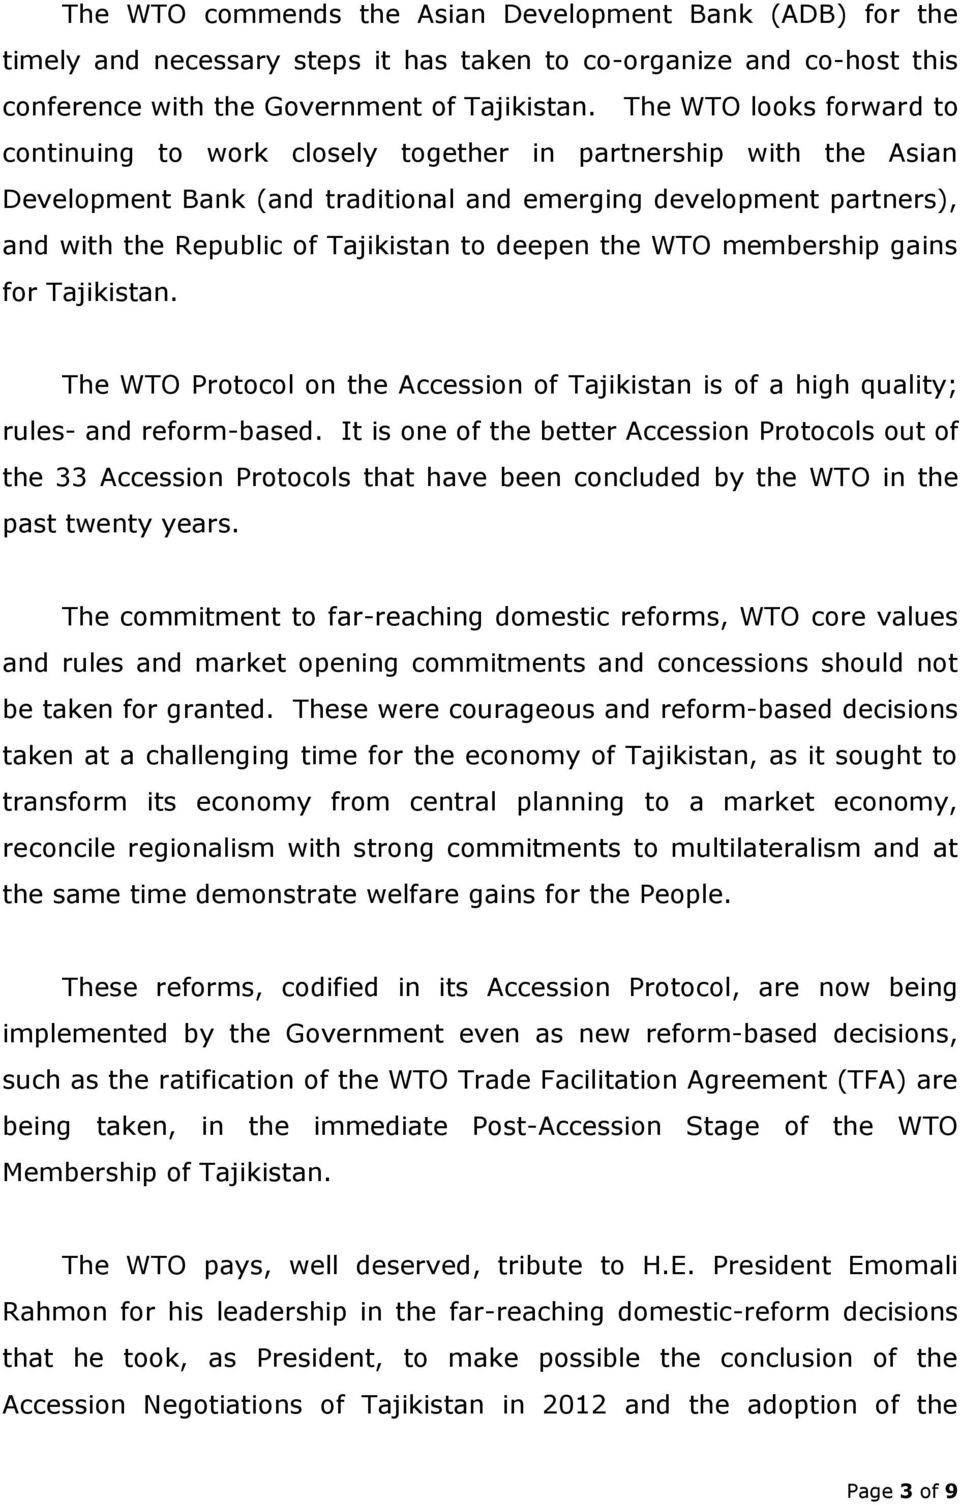 deepen the WTO membership gains for Tajikistan. The WTO Protocol on the Accession of Tajikistan is of a high quality; rules- and reform-based.